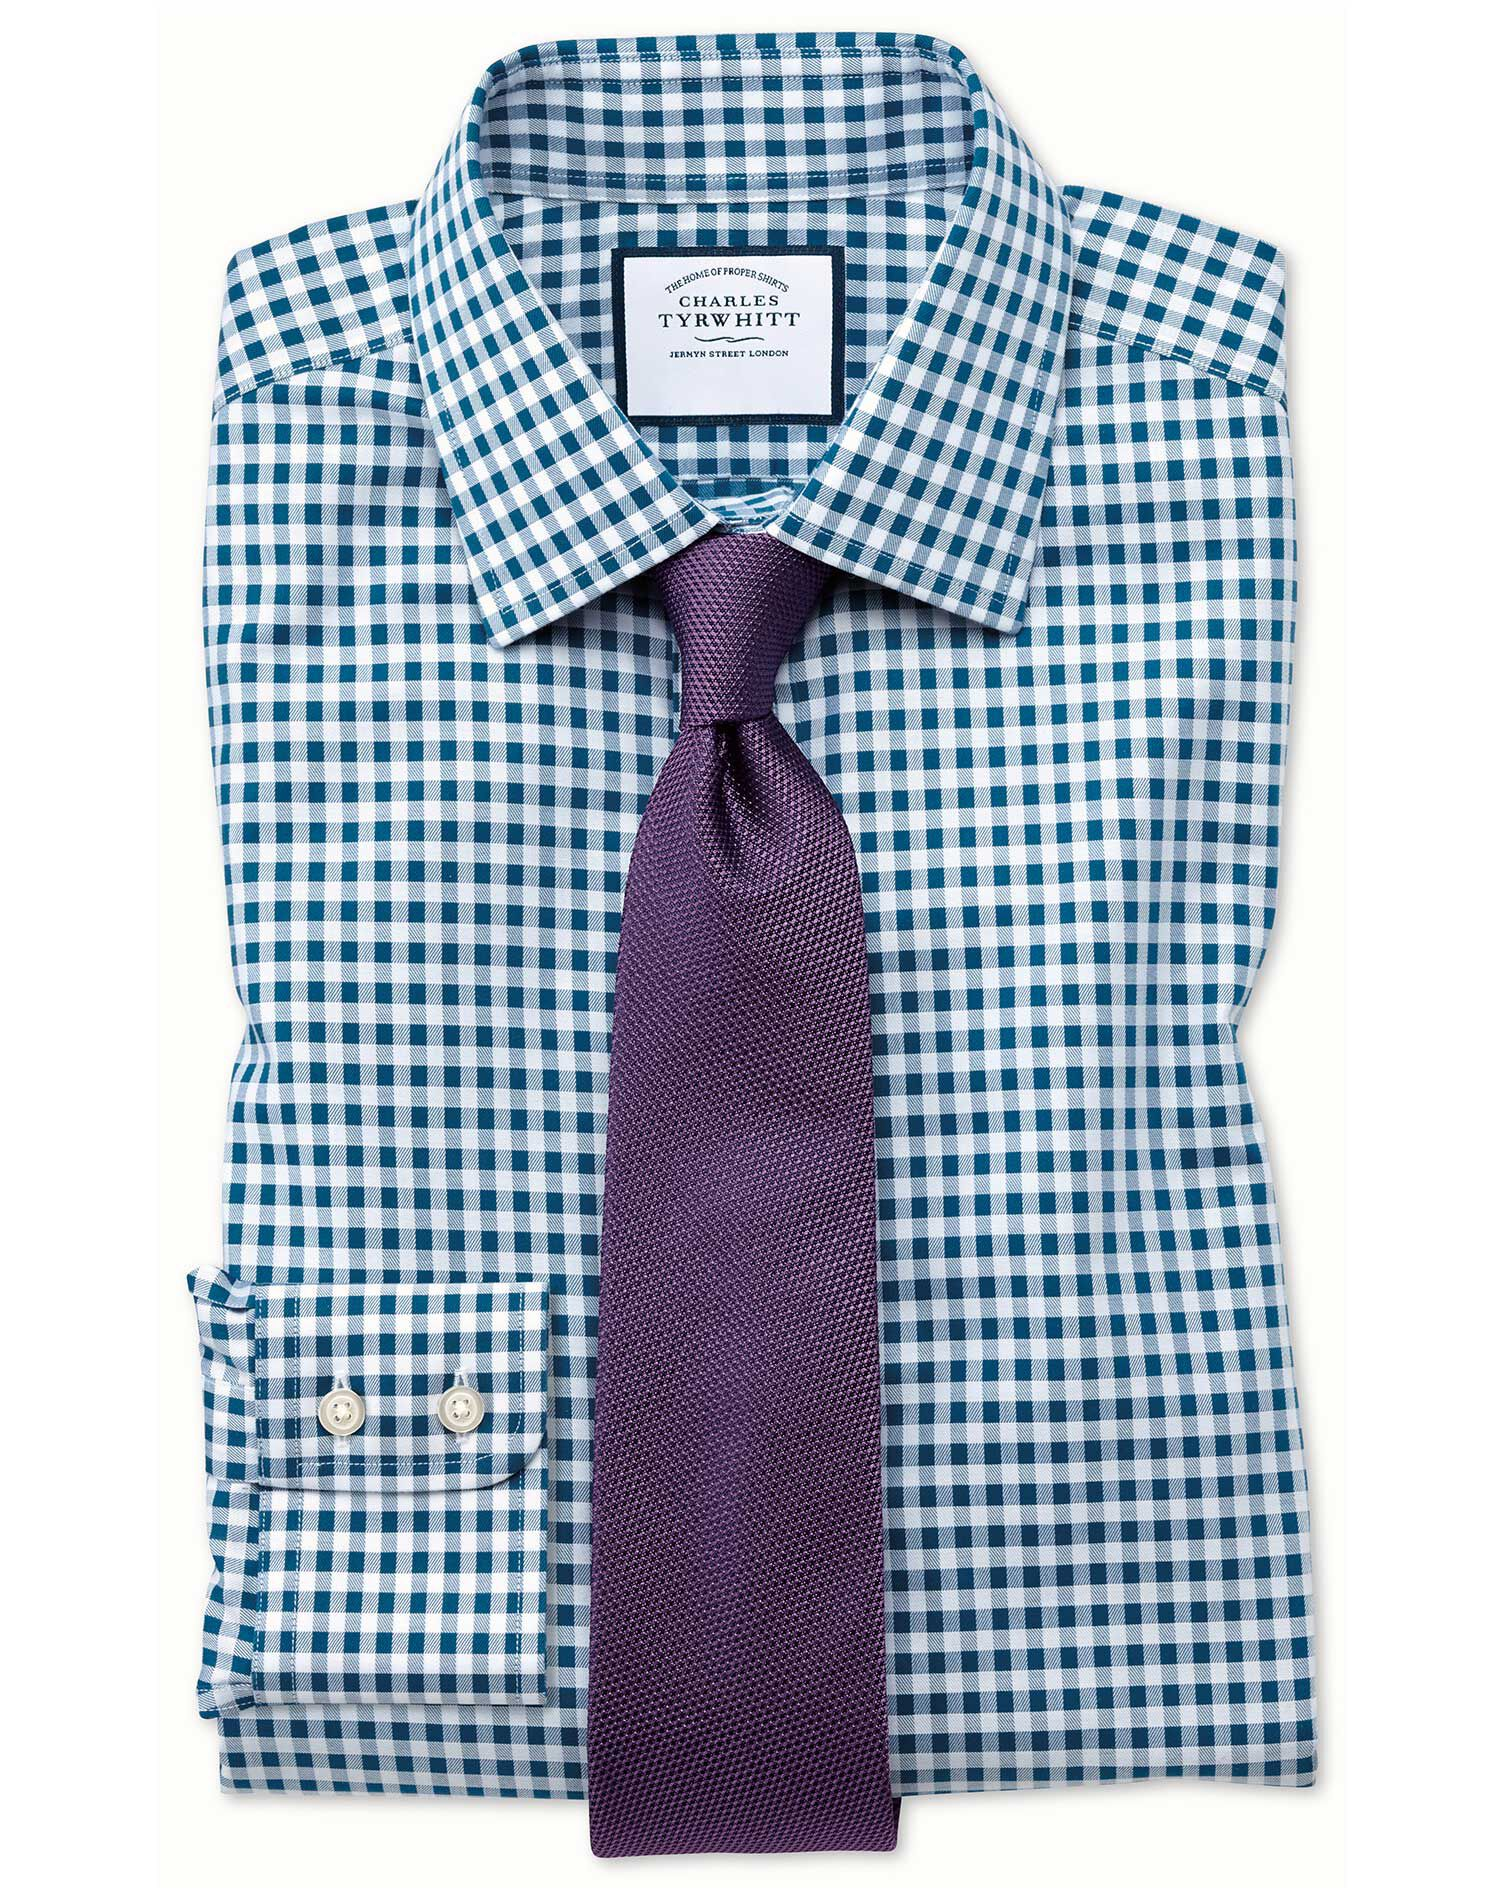 Slim Fit Non-Iron Gingham Teal Cotton Formal Shirt Single Cuff Size 14.5/33 by Charles Tyrwhitt